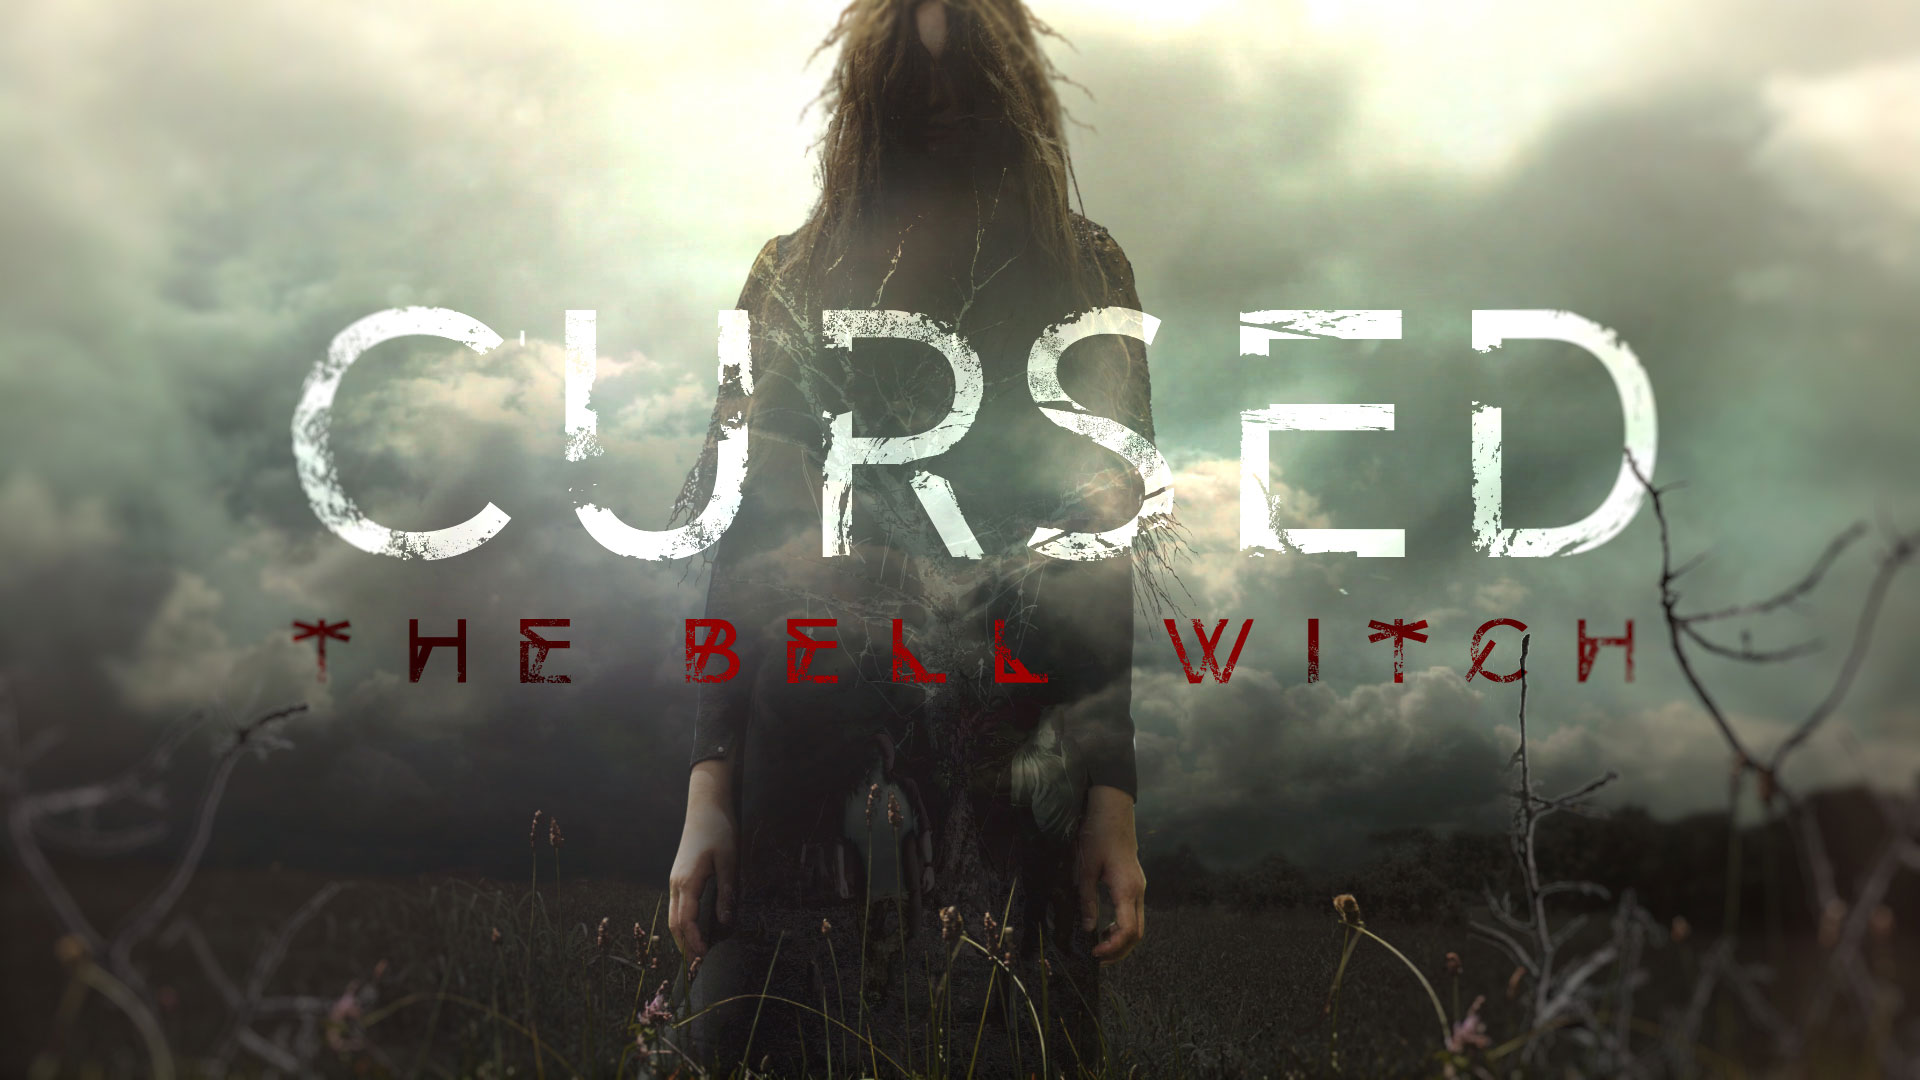 A&E Networks    CURSED: THE BELL WITCH  Broadcast Design | Design & Animation   VIEW